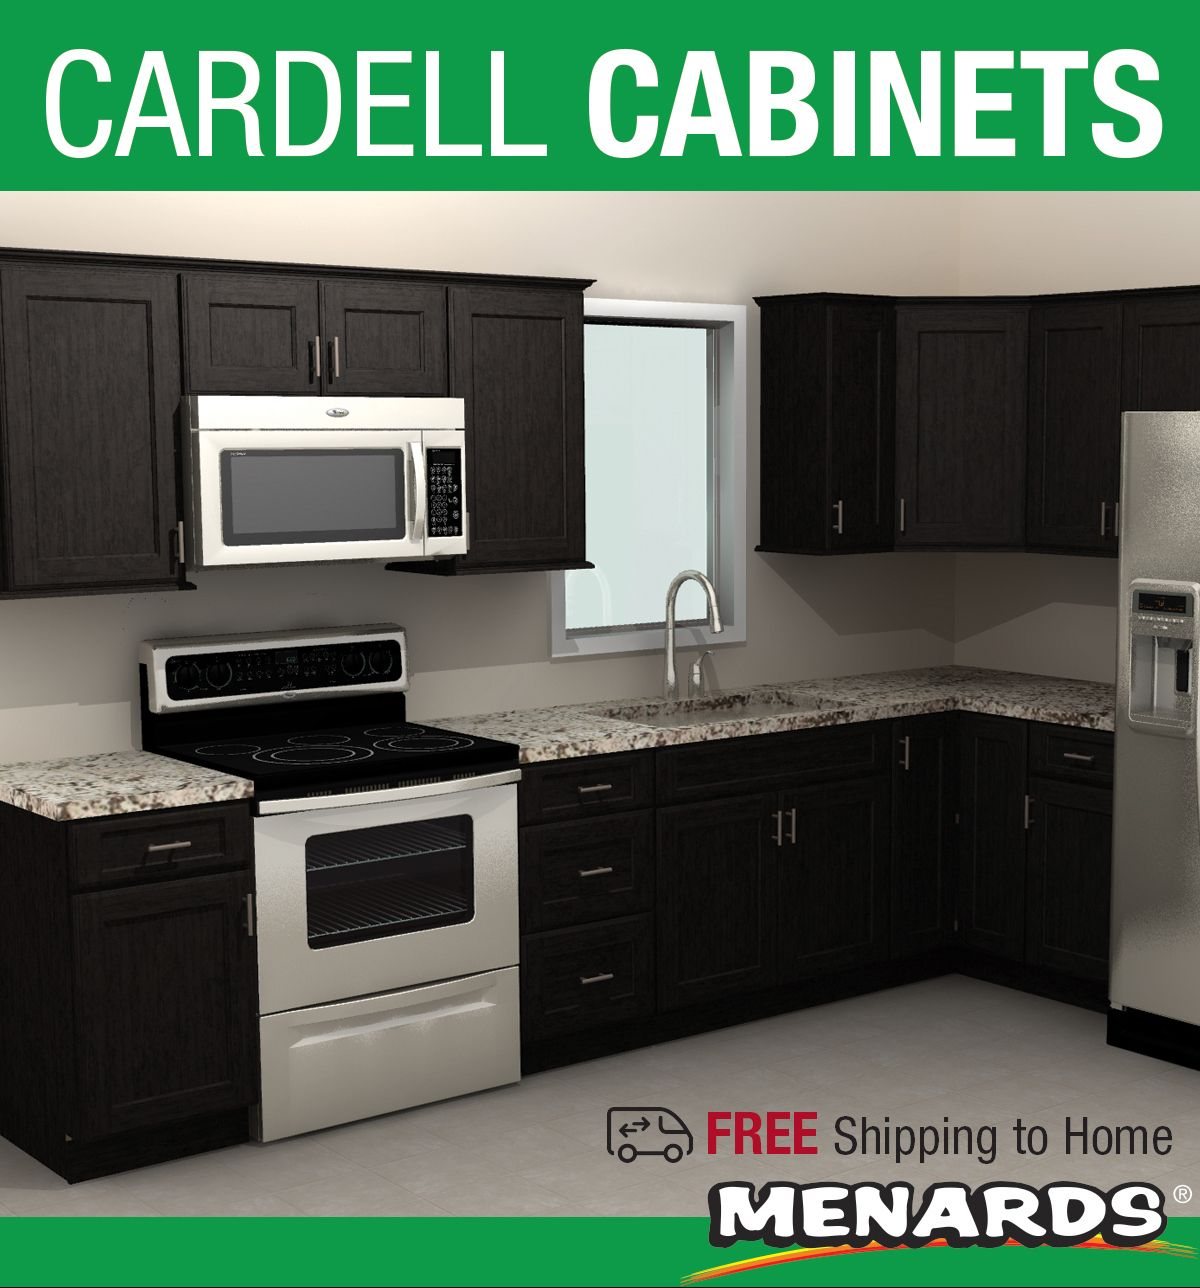 Cardell Cornerstone Collection Rockney Peppercorn 19 L Kitchen Kitchen Wellness Design Cardell Cabinets